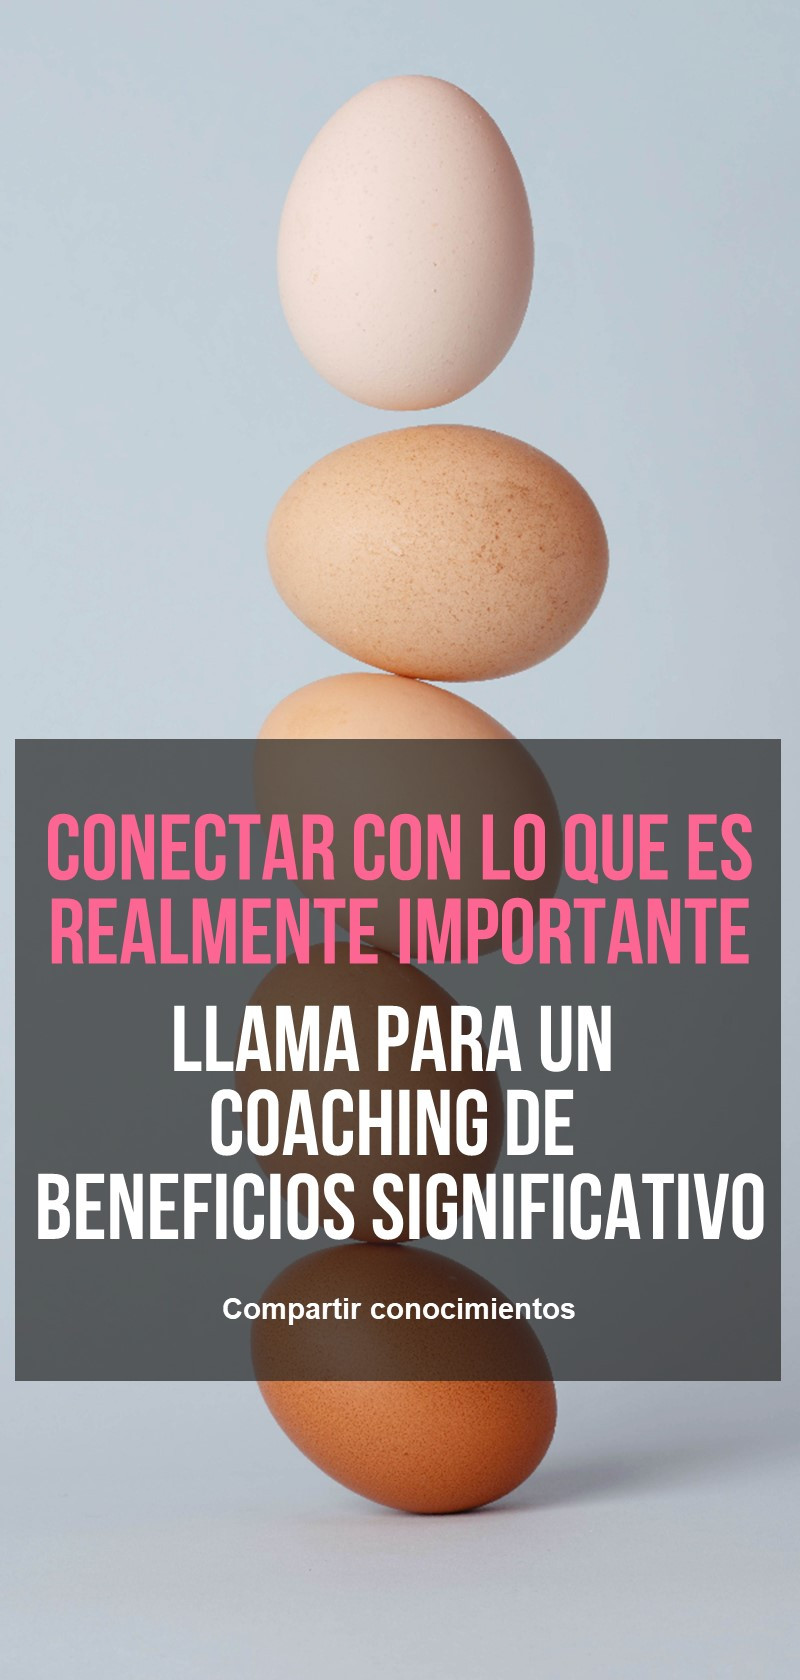 Coaching empresarial con beneficios significativos